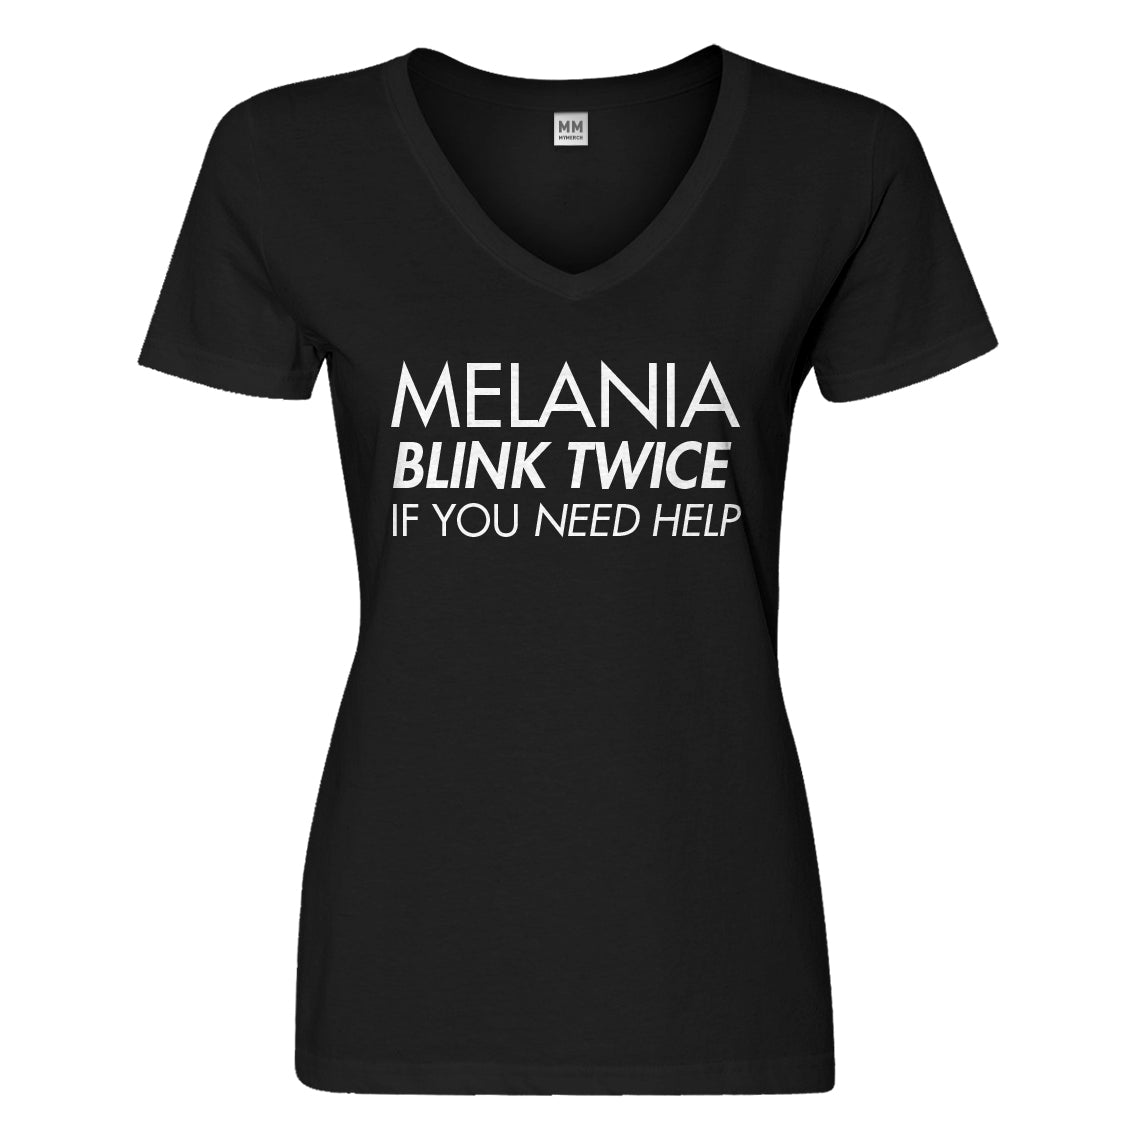 Womens Melania Blink Twice if You Need Help! Vneck T-shirt